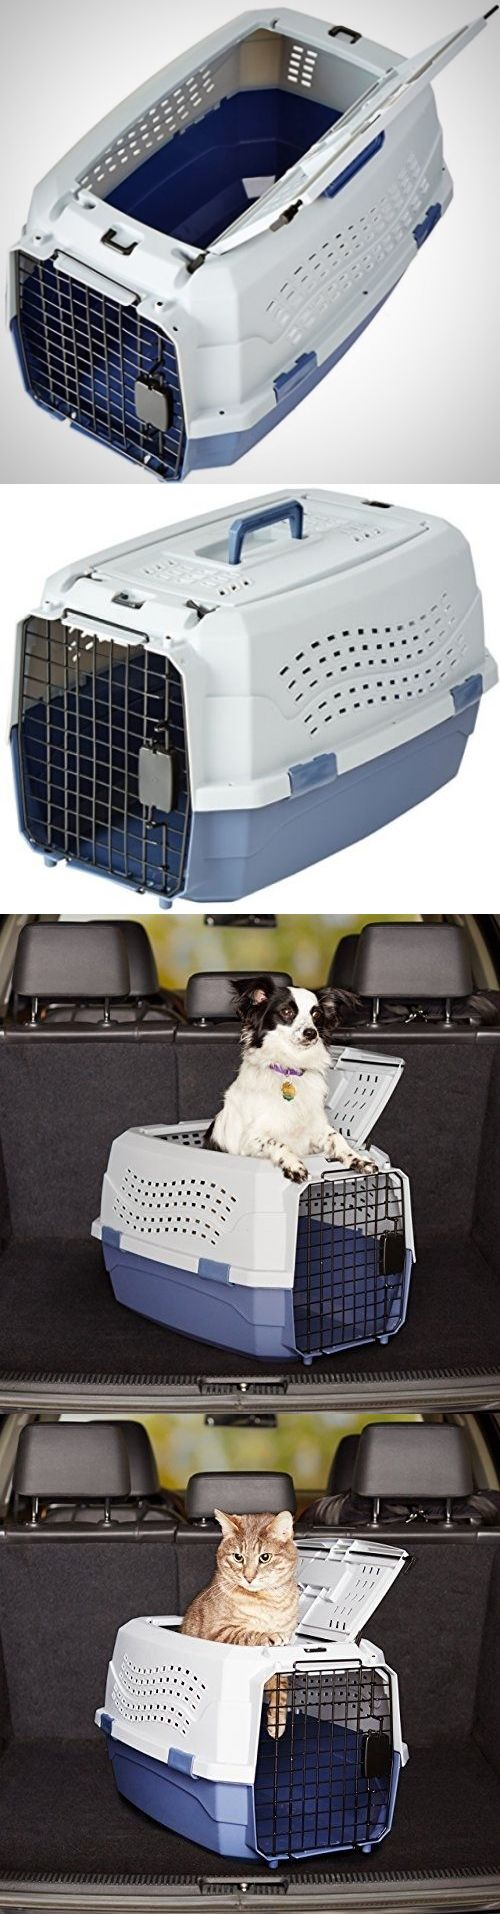 Carriers and Totes 177788: Pet Carrier Two Door Top Load Kennel Travel Crate Dog Cat Puppy Cage New 23 Inch -> BUY IT NOW ONLY: $35.99 on eBay!